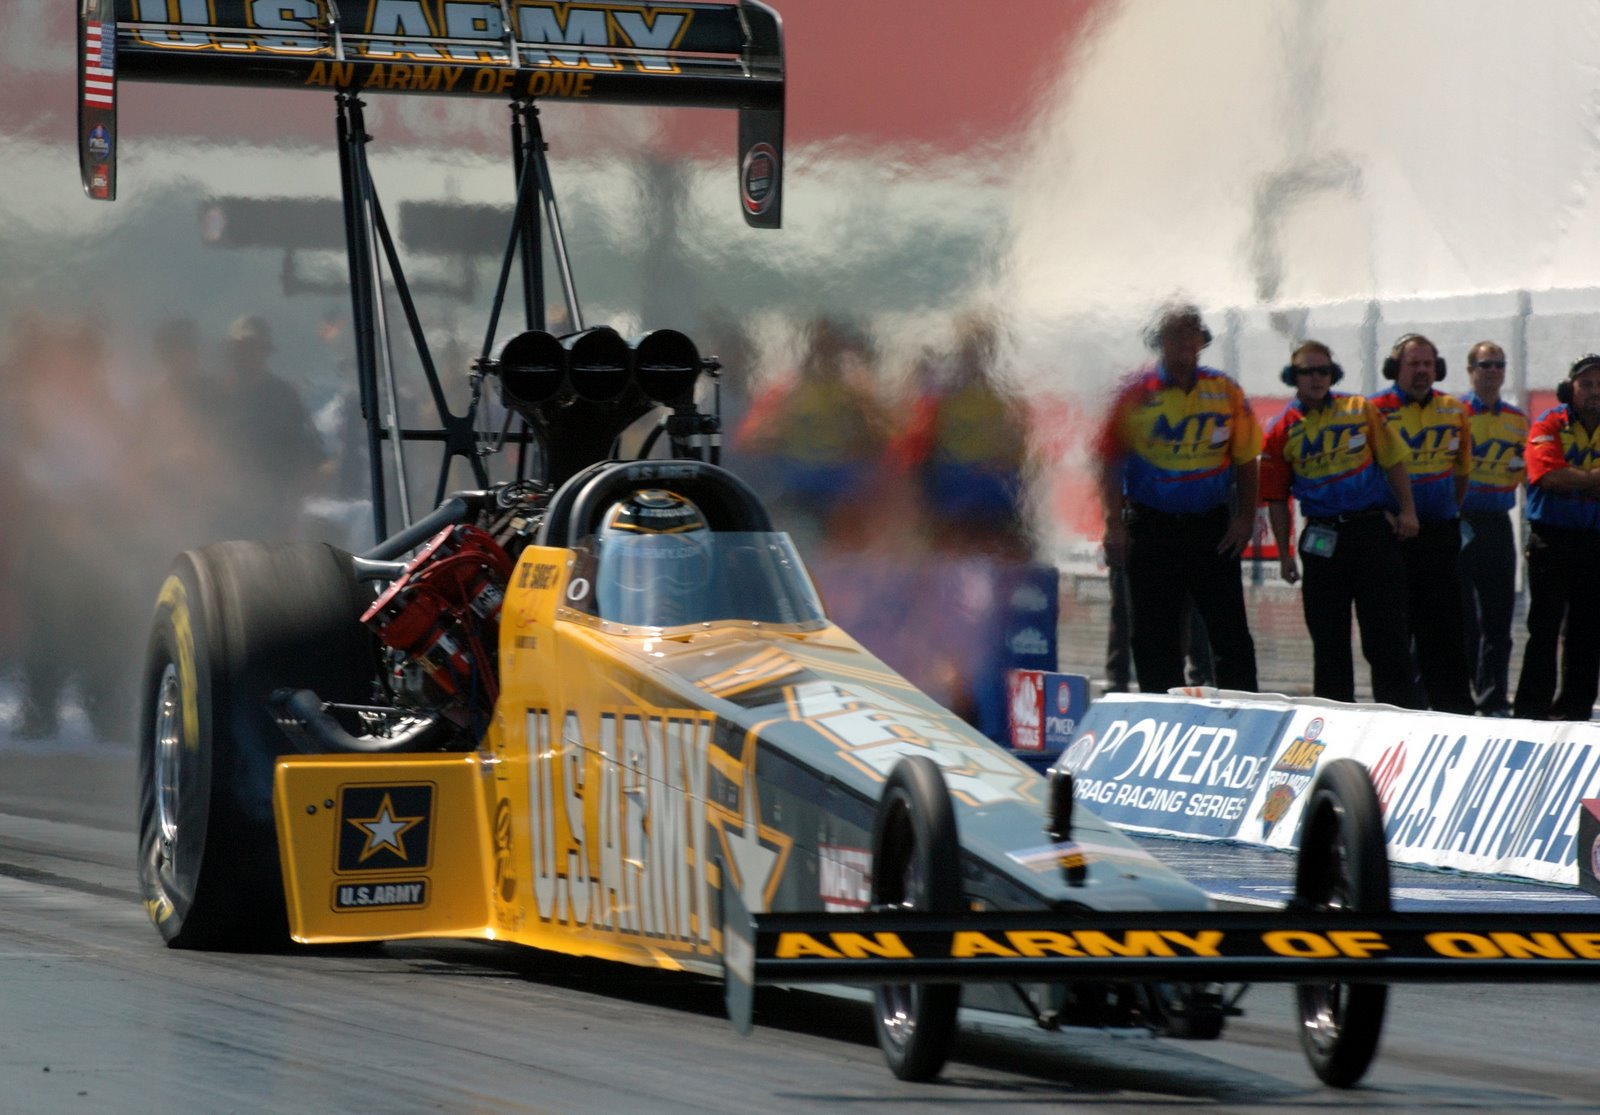 NHRA top fuel dragster